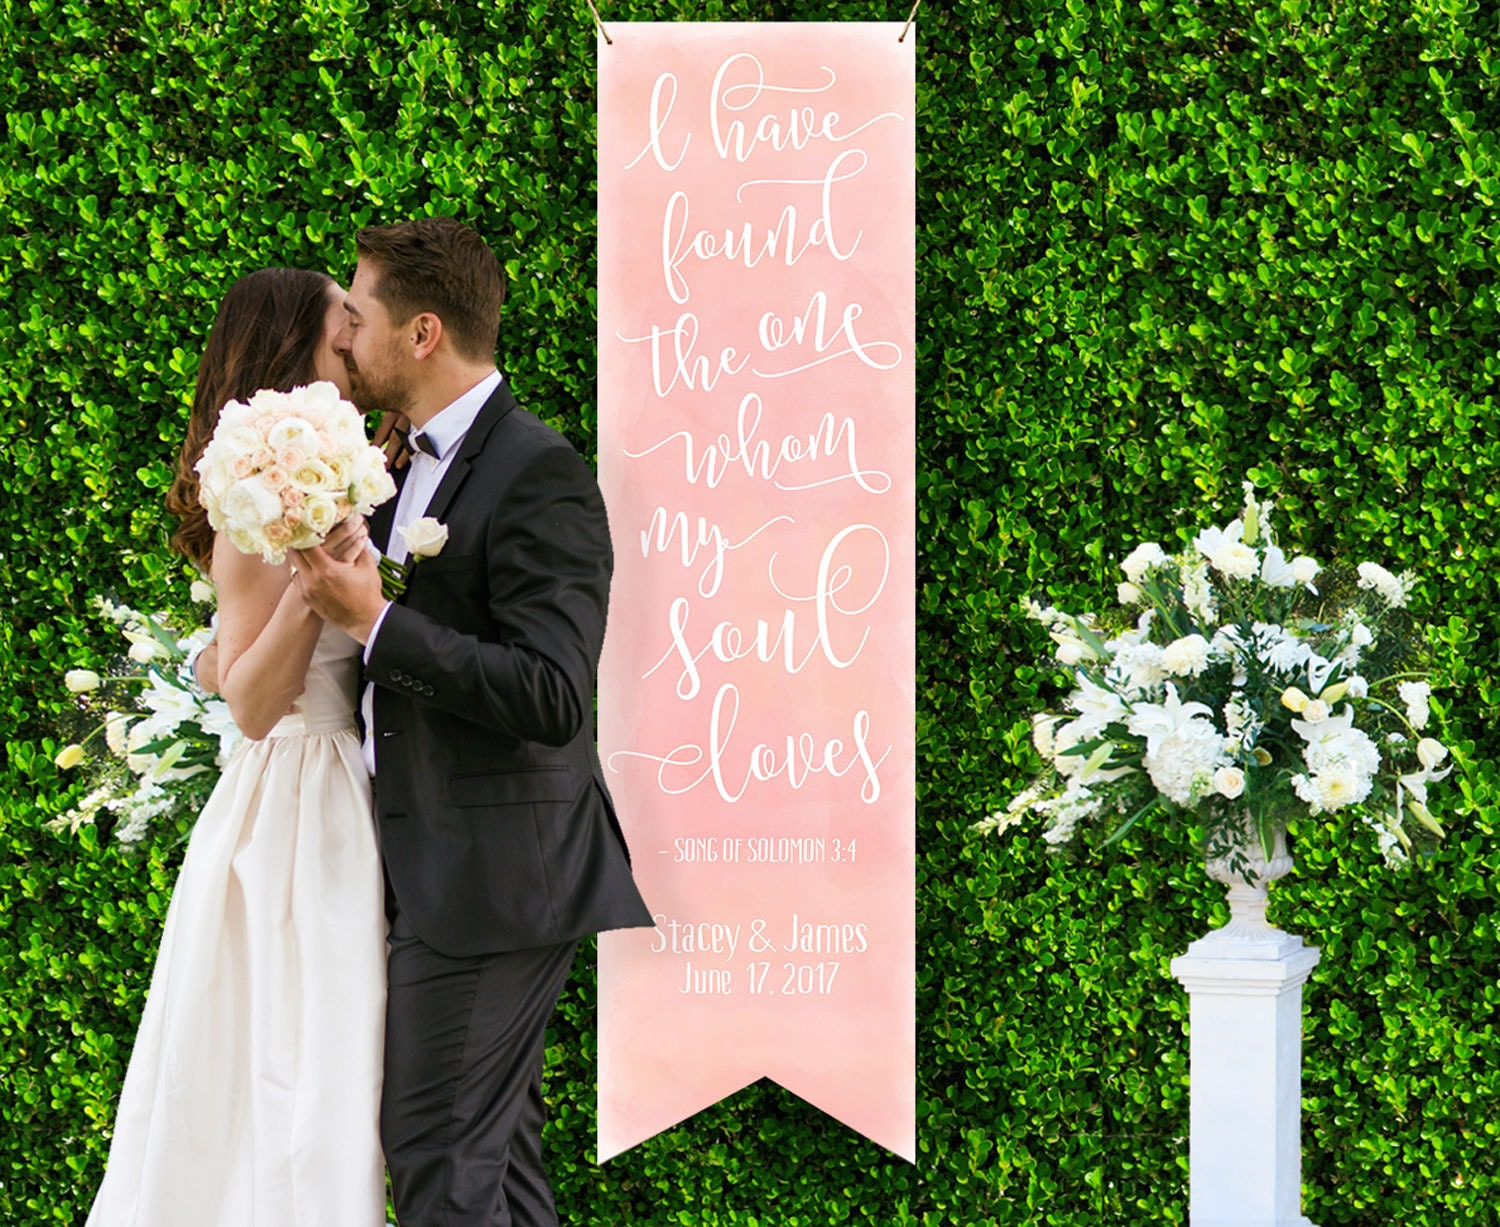 Wedding Backdrop Sign Decor for Ceremony or Reception